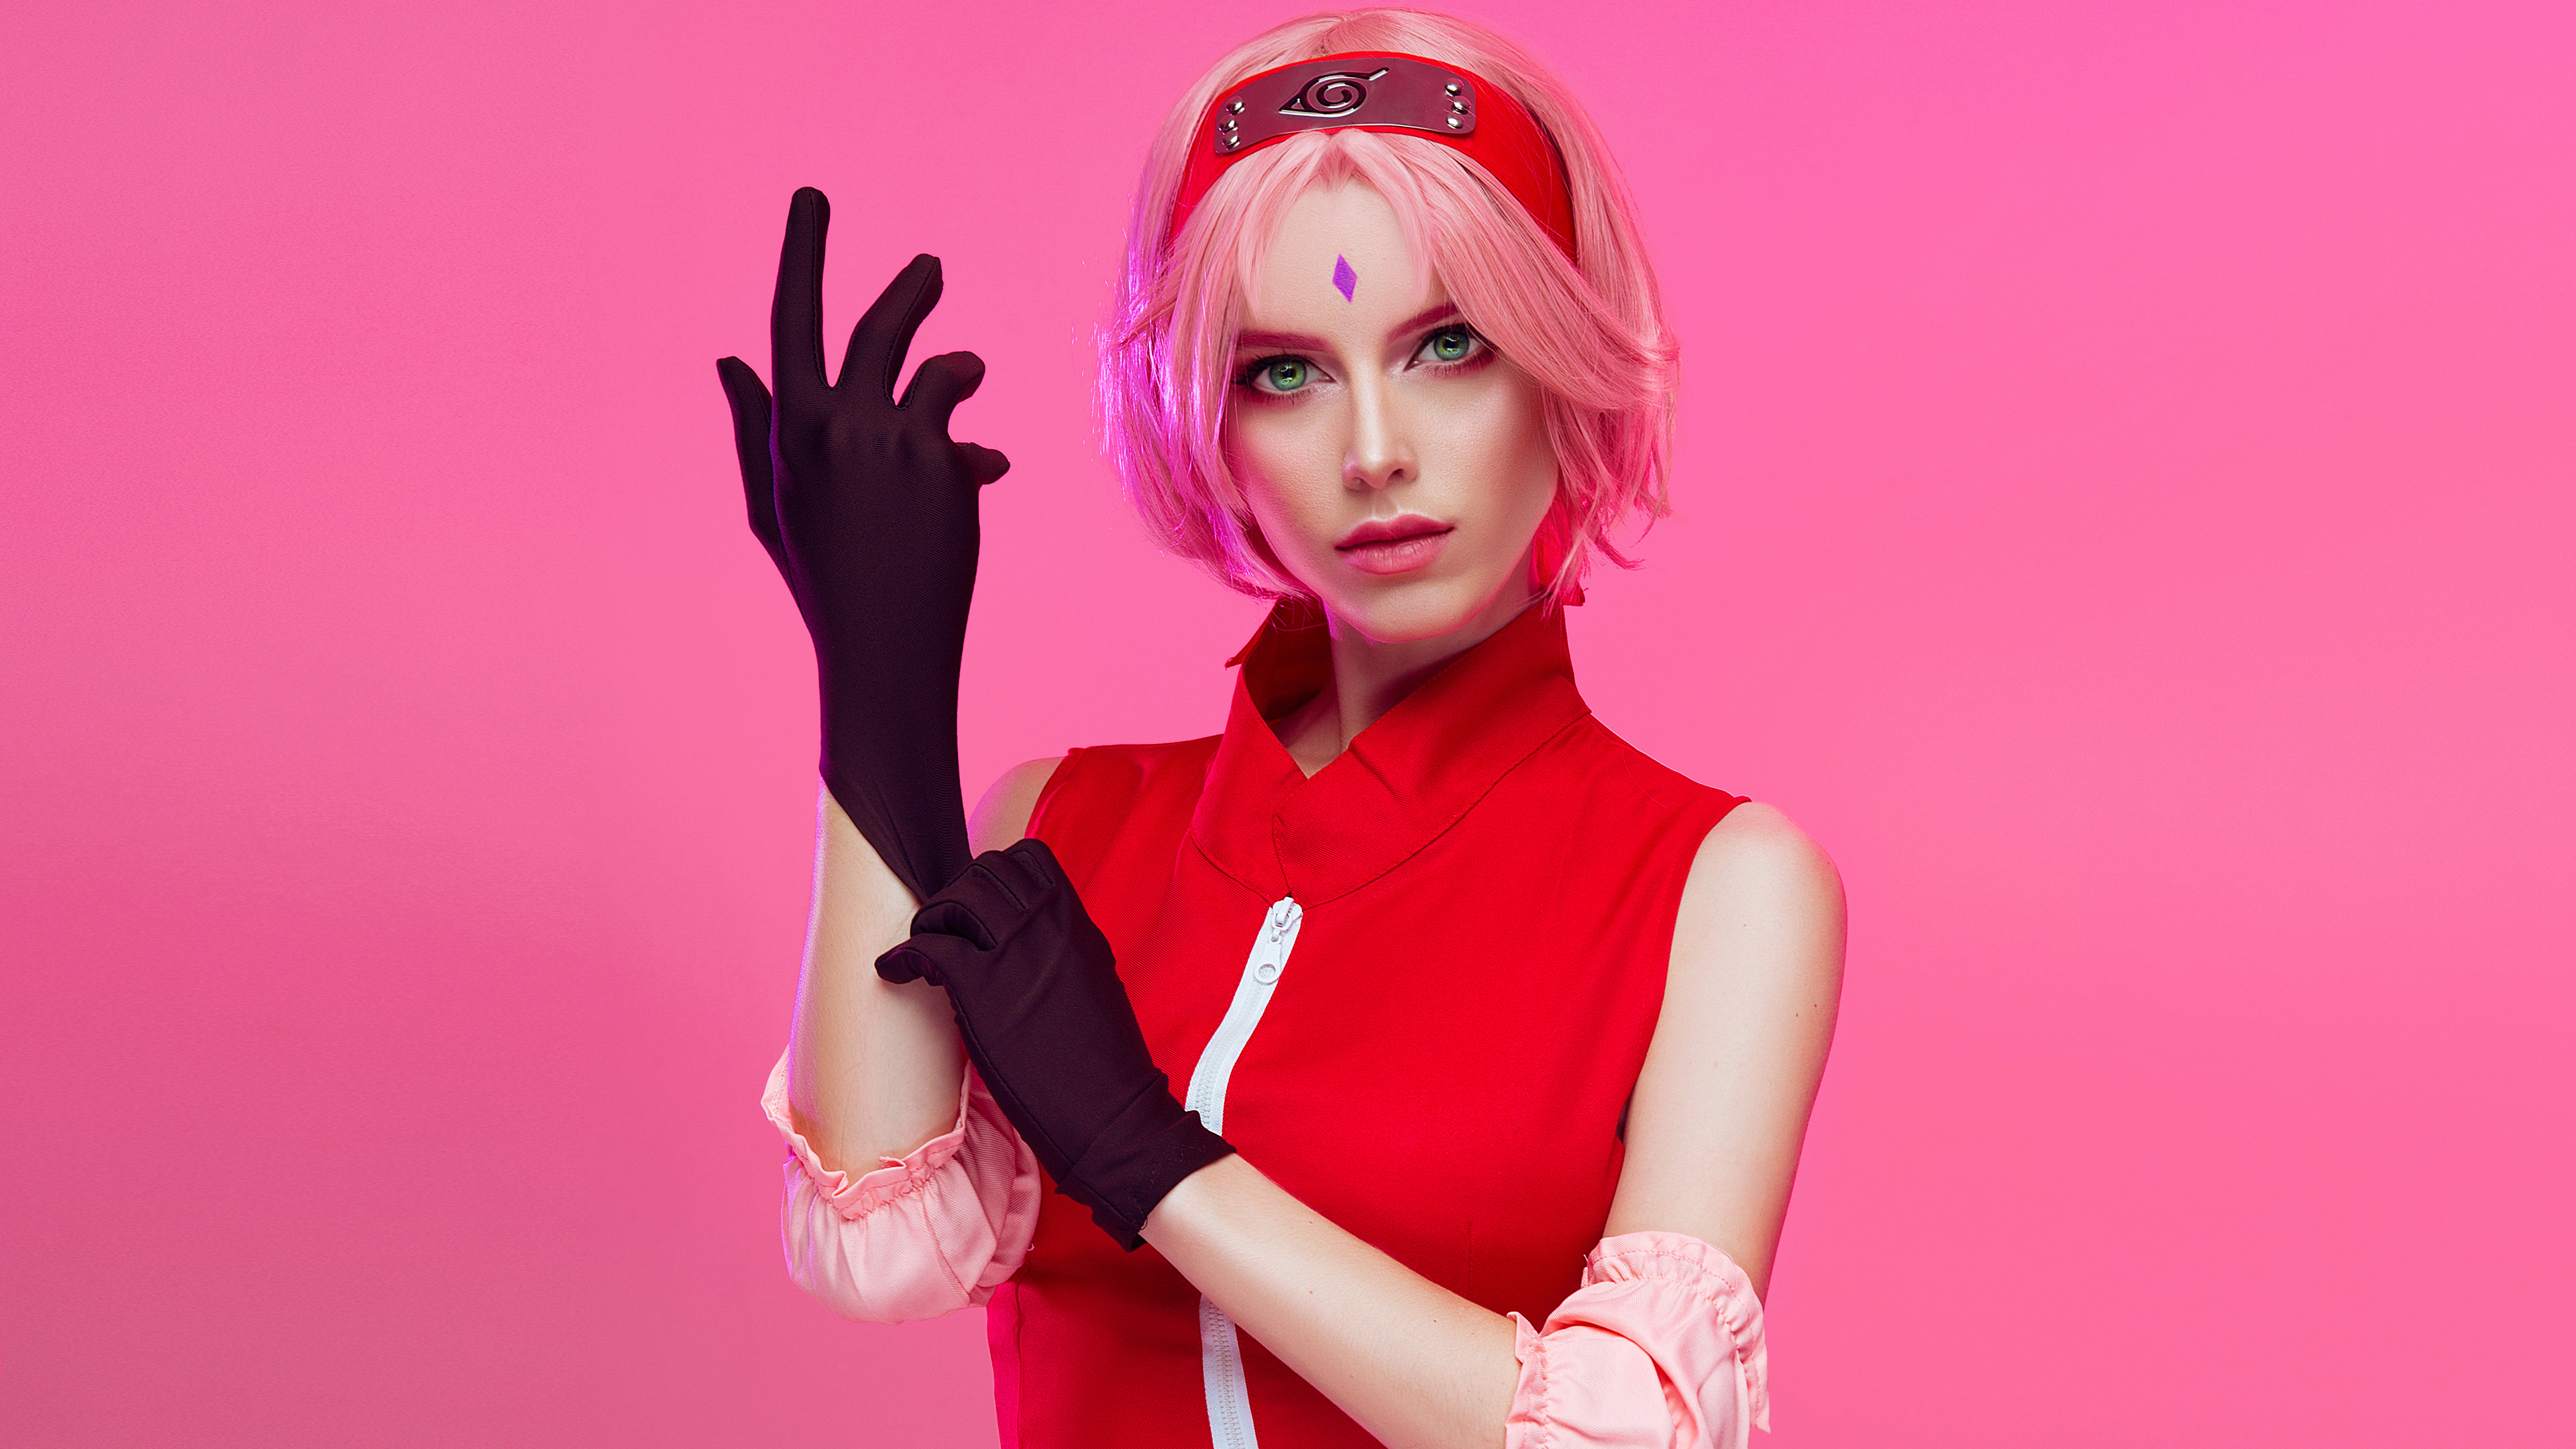 Sakura Haruno From Naruto Cosplay, HD Anime, 4k Wallpapers, Images